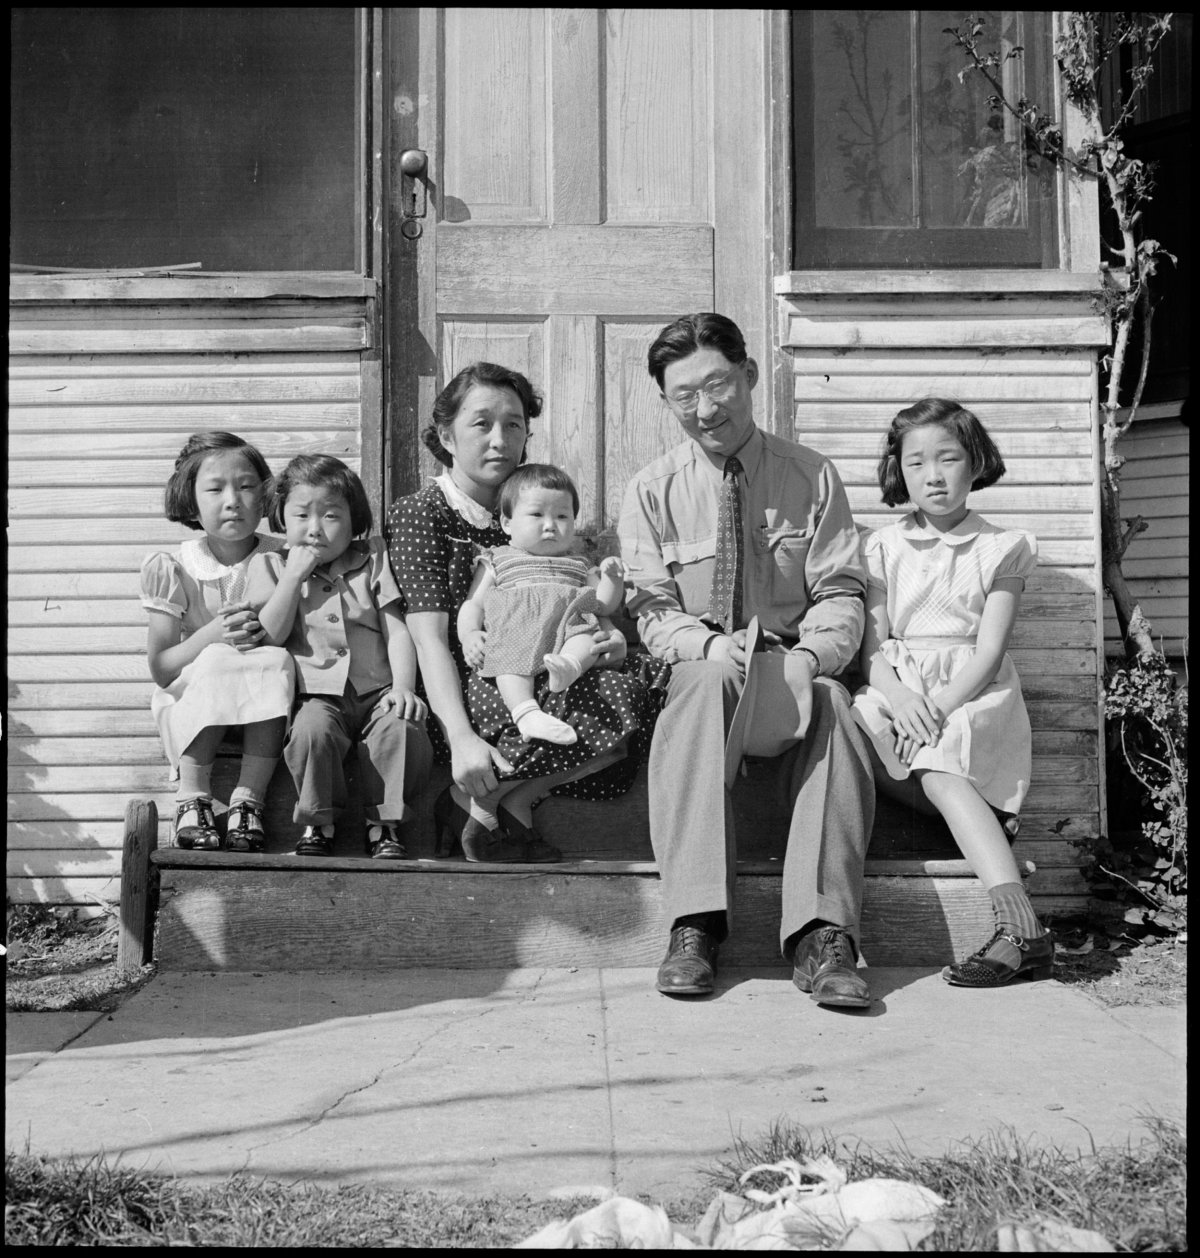 Mountain View, California. Henry Mitarai, age 36, successful large-scale farm operator with his family on the steps of their ranch home, about six weeks before evacuation. This family, along with others of Japanese ancestry, will spend the duration at War Relocation Authority centers.